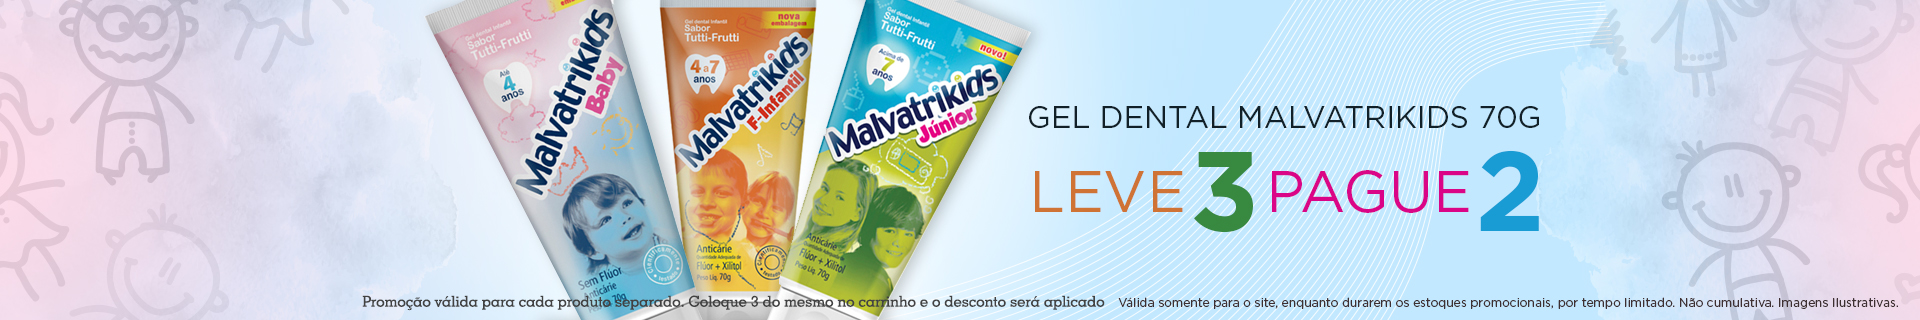 Banner Home | Malvatrikids gel dental leve 3 pague